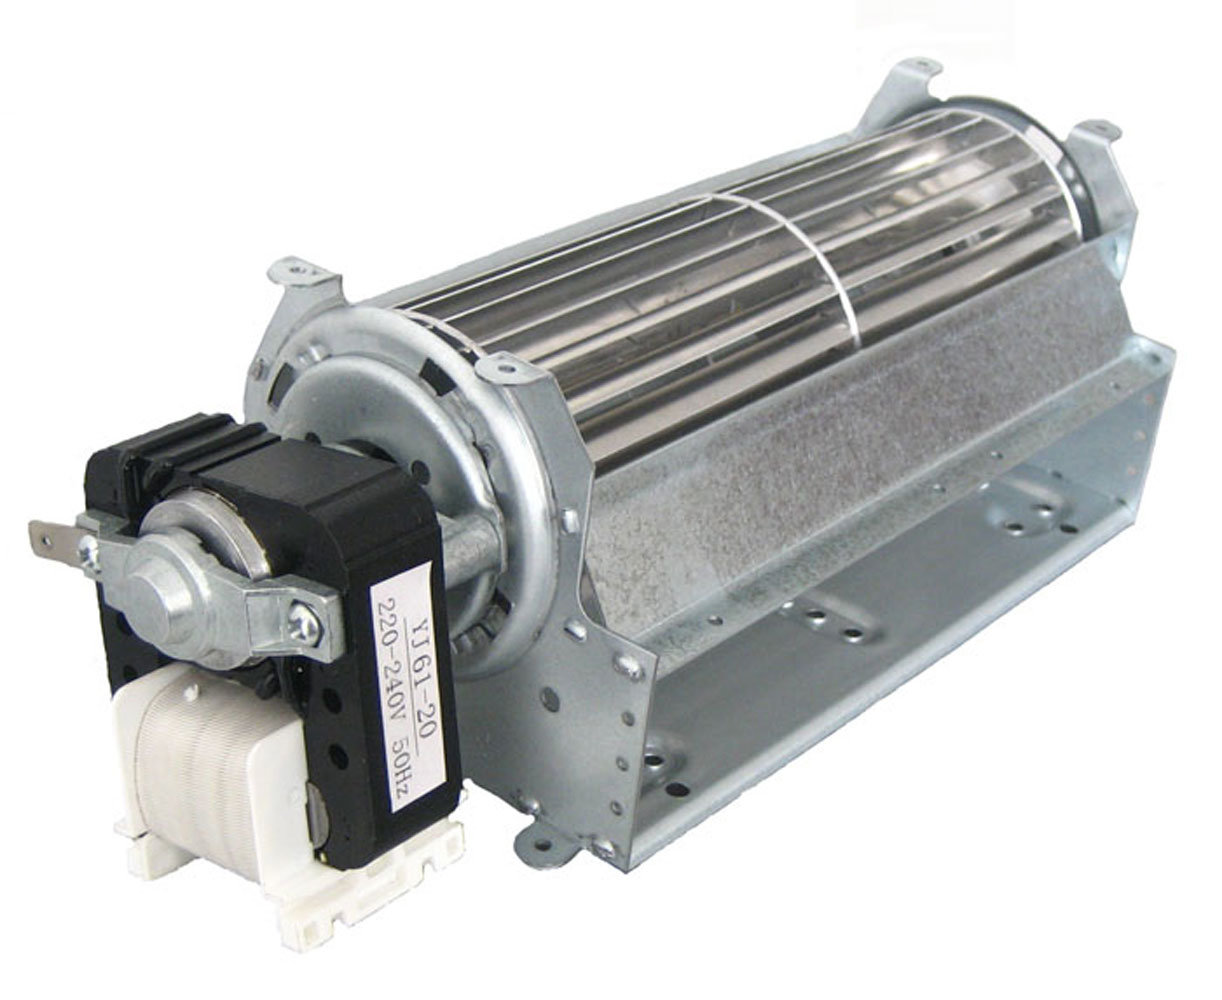 China blower motor yj61 china fan motor ac motor for Blower motor for ac